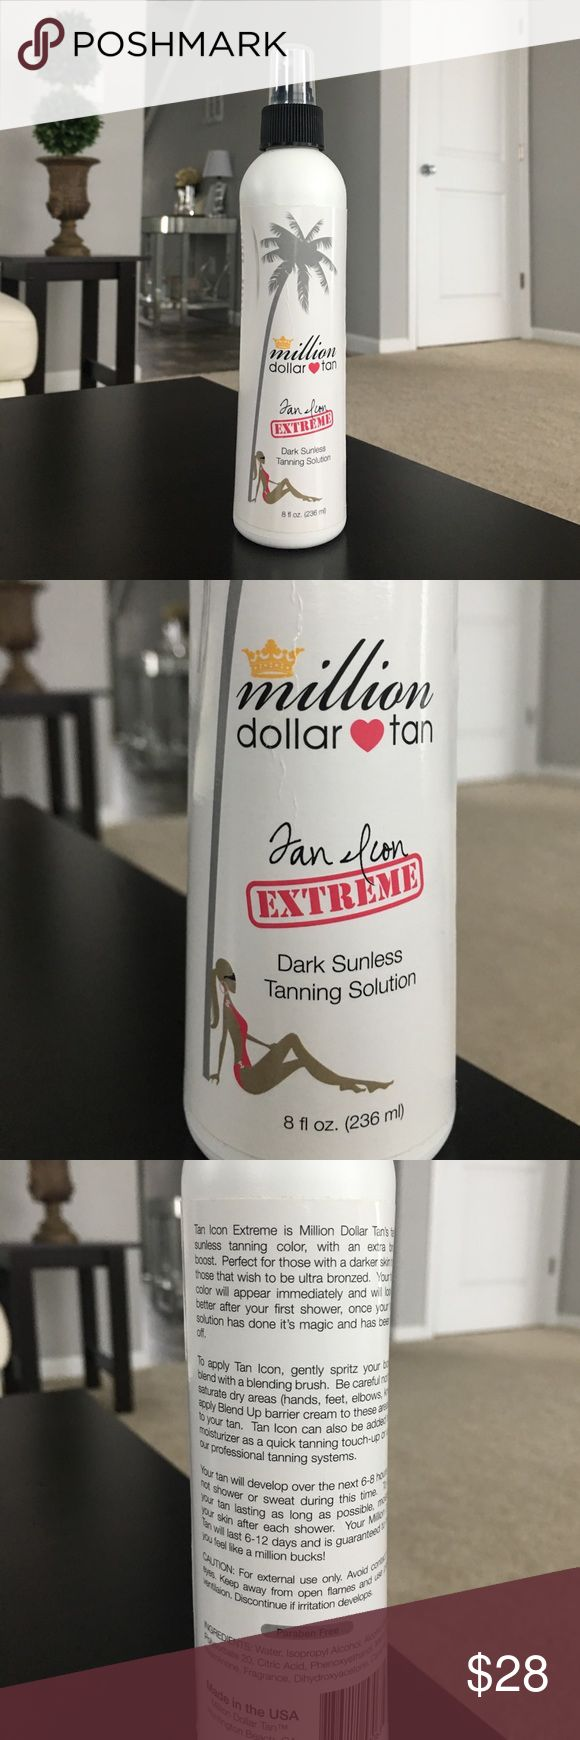 ✨Million Dollar Tan Cabana Tan Extreme 8oz!✨ This is a new 8oz bottle of million dollar tan's cabana tan extreme dark sunless tanning lotion. It retails for $38 plus tax online. I received this in the mail and as you can see, the bottle was a bit damaged. Other than that, it's good. This stuff is perfect for a beautiful natural golden tan. I have used this stuff for the past couple years and it's my favorite, but I reach for my lotions more now, just personal preference. Works great, amazing…